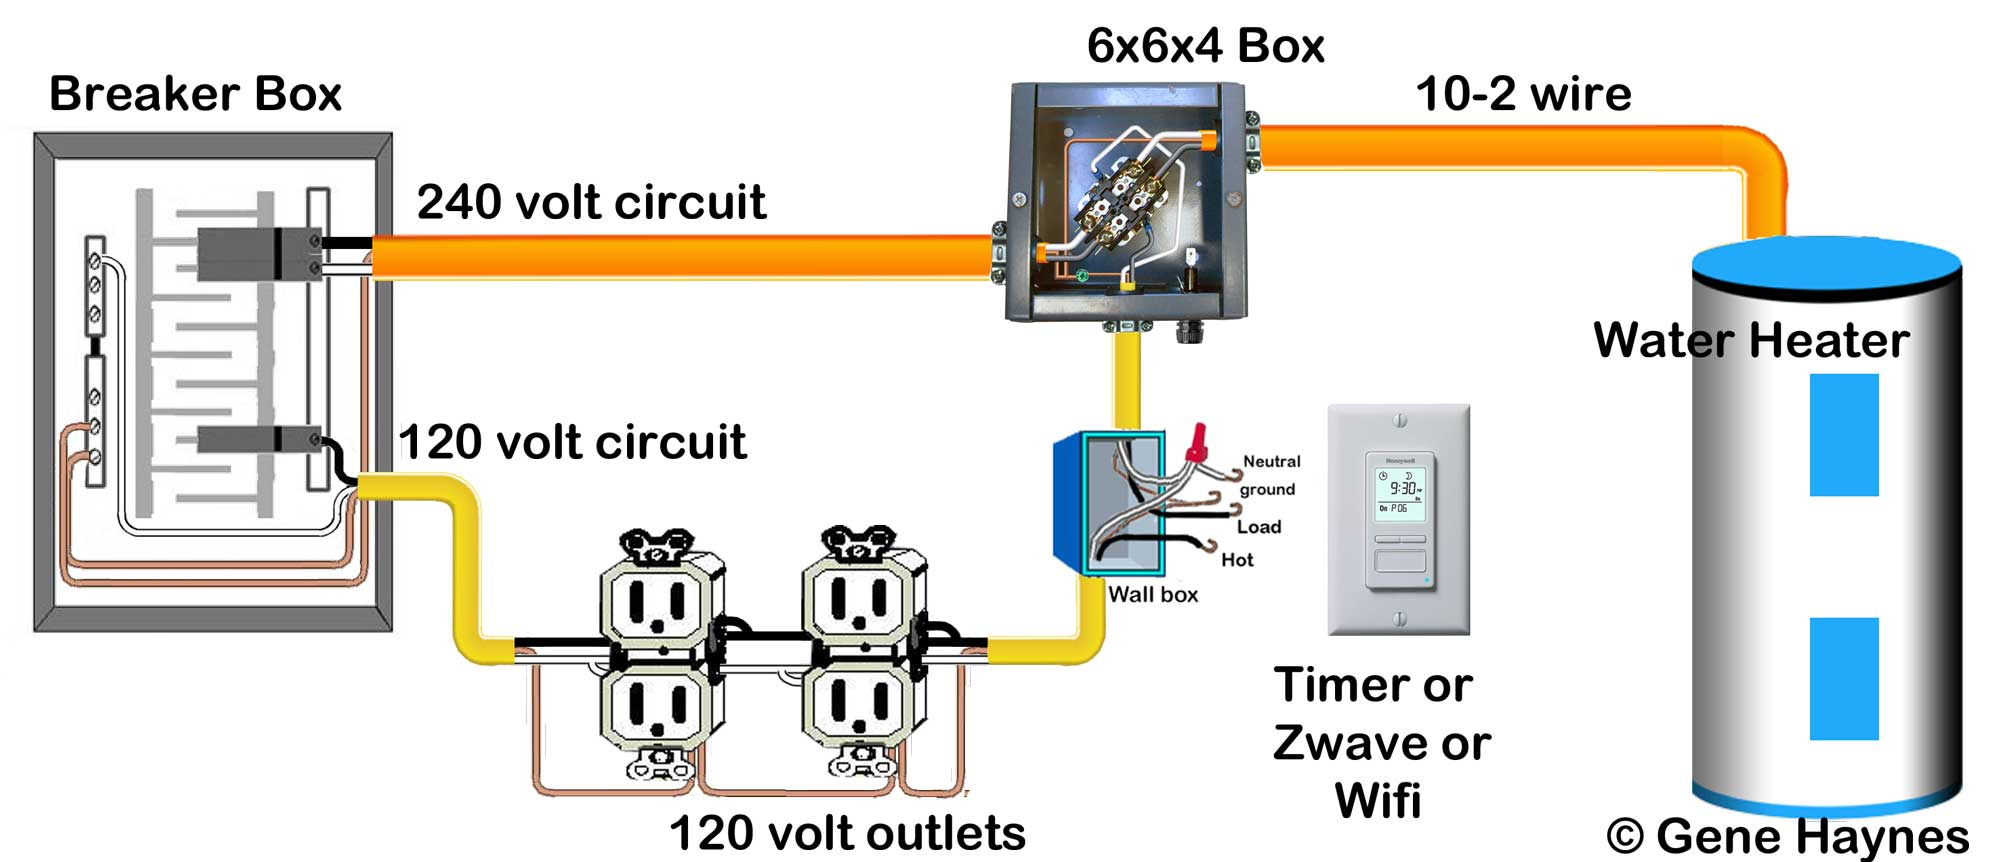 Basic House Wiring Home Main Box 240 Volt Circuits Can Be Controlled By 120v Using A Contactor This Lets You Install Timer Or Automation Device To Any Circuit